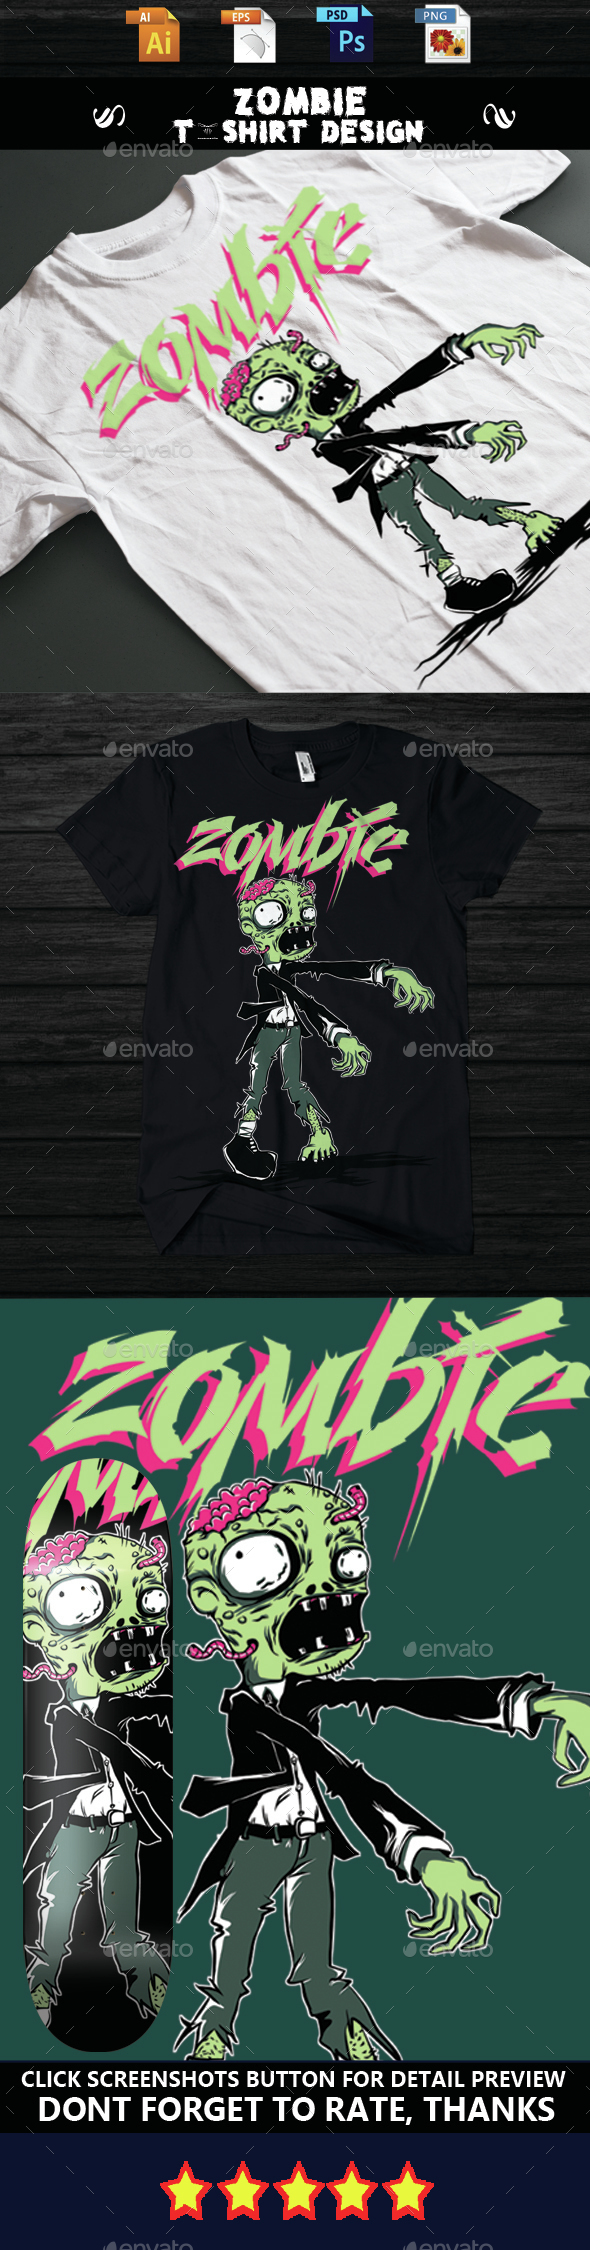 Zombie T-shirt Design - Funny Designs